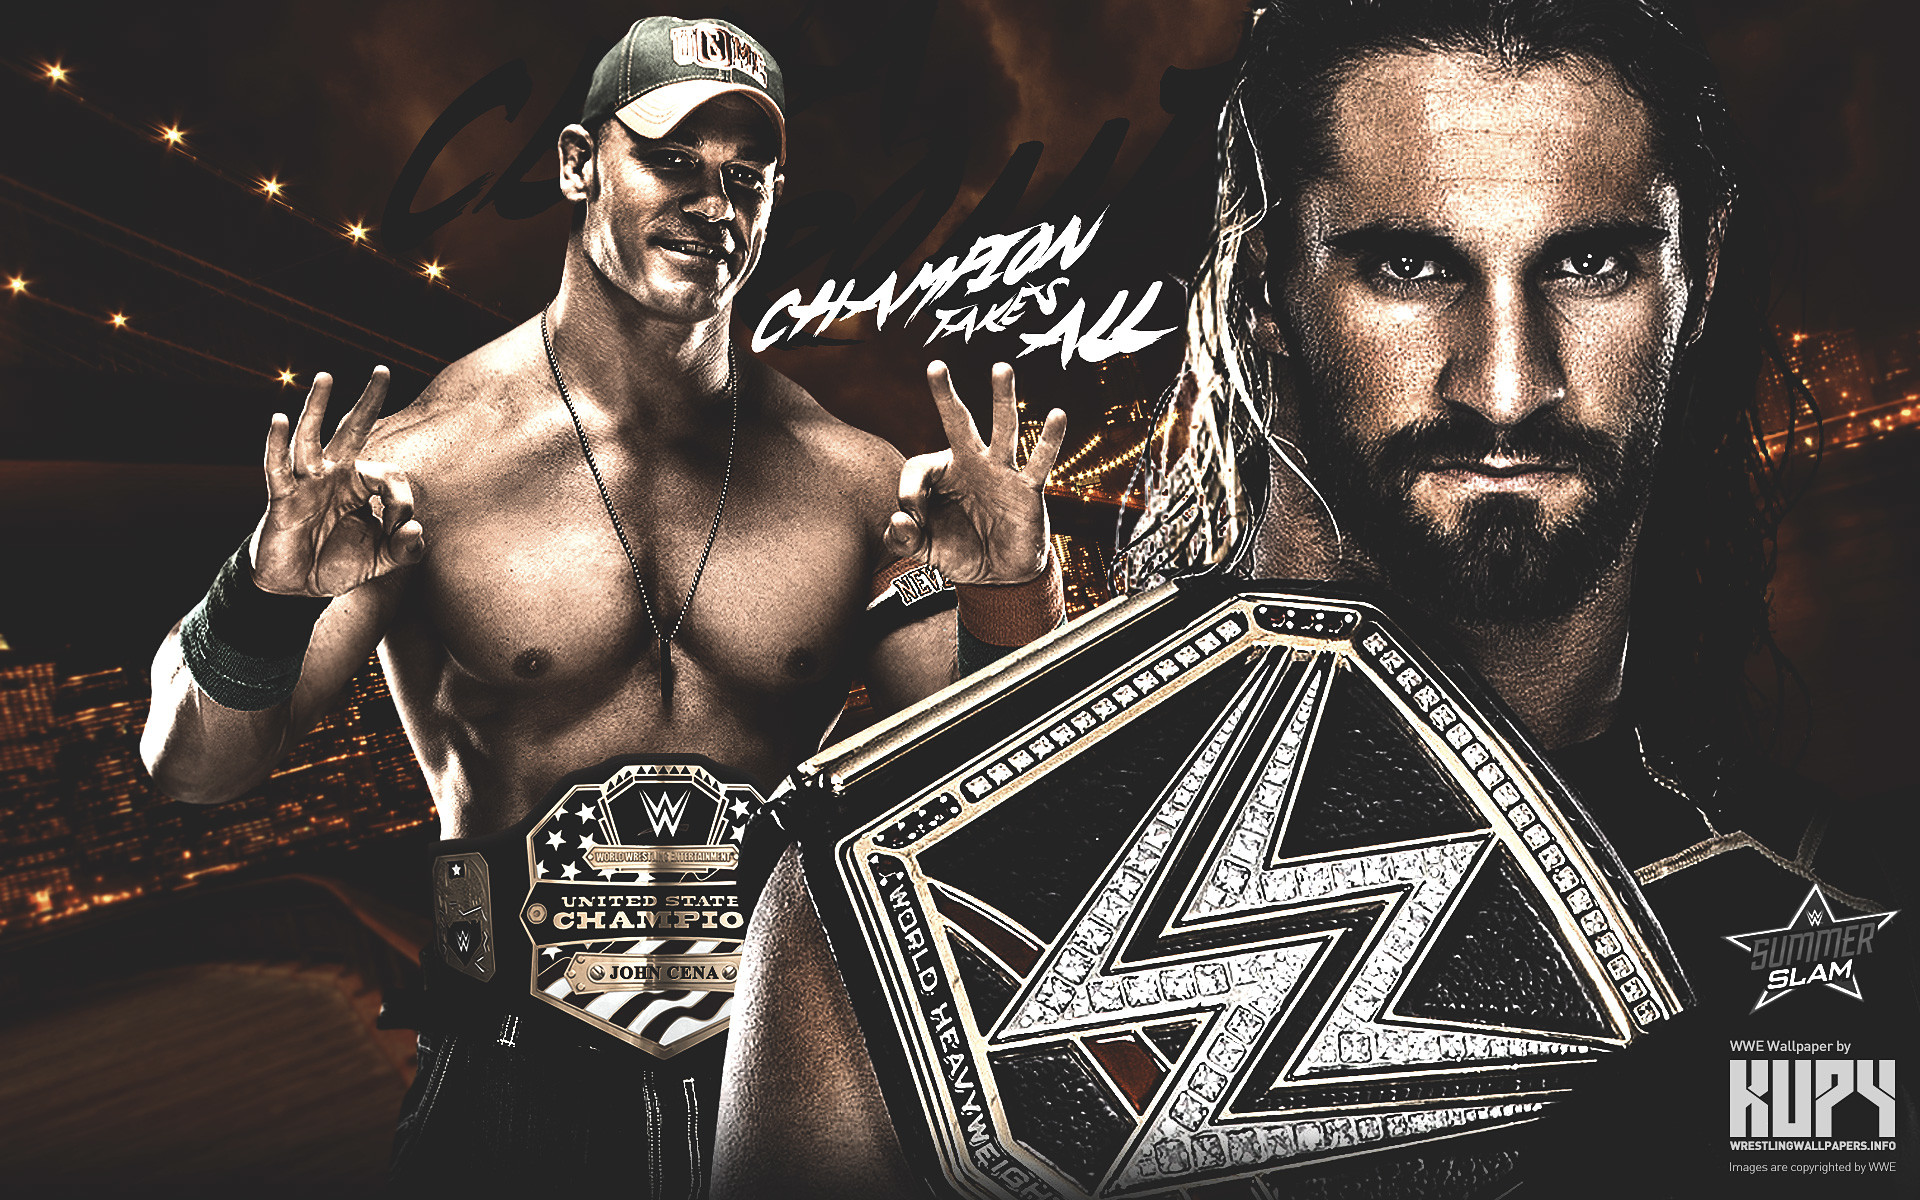 … 1024×768 / iPad / Tablet | PS Vita wallpaper | iPhone 6 / iPhone 6 Plus  wallpaper | iPhone 5S wallpaper | Facebook Timeline Cover. After Seth  Rollins …